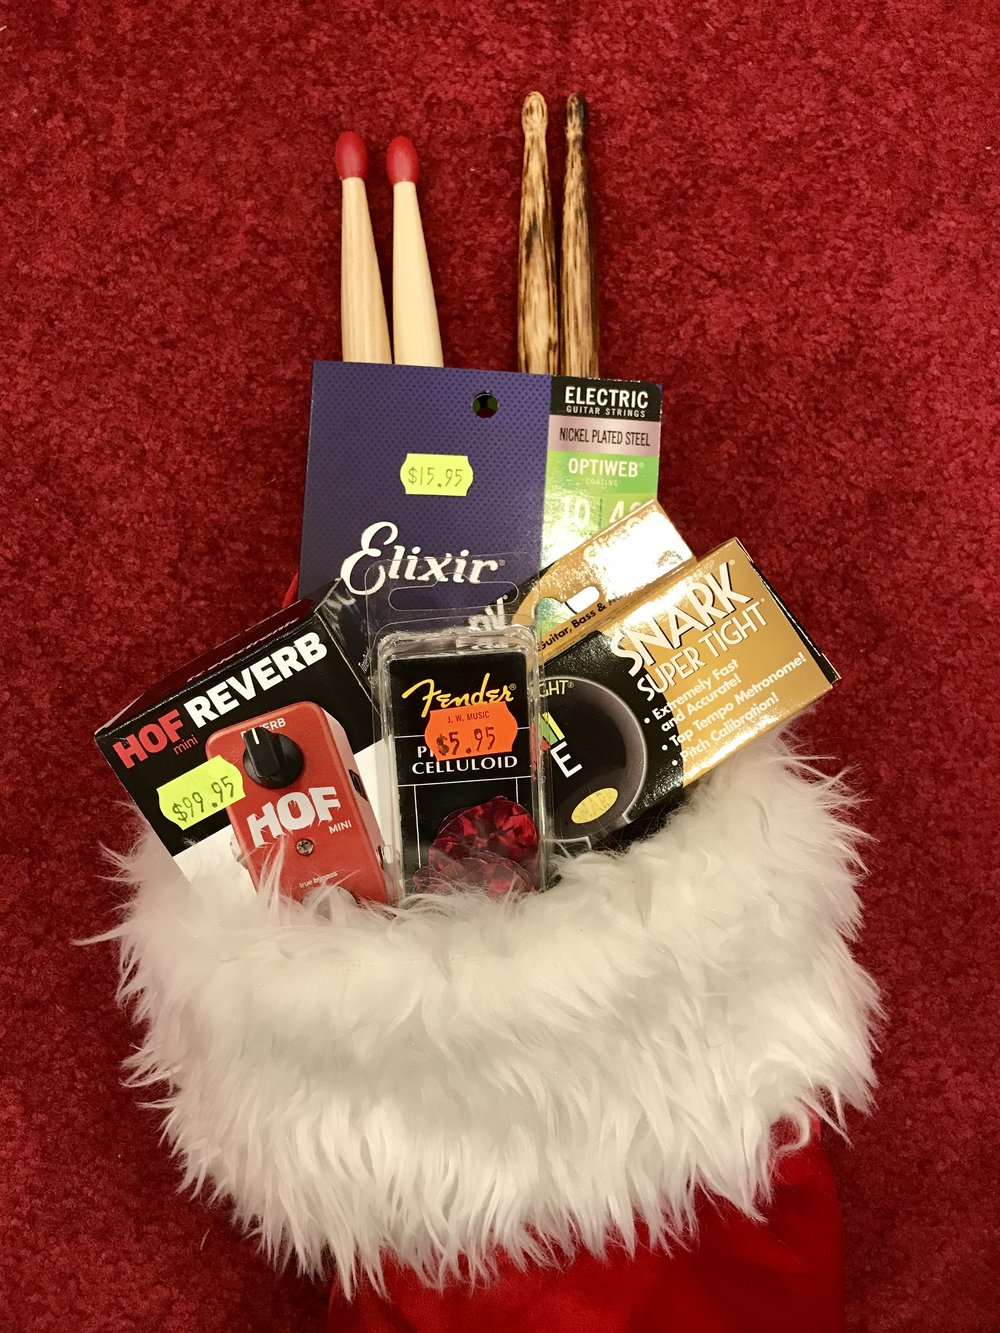 Stocking stuffers at JW Music!